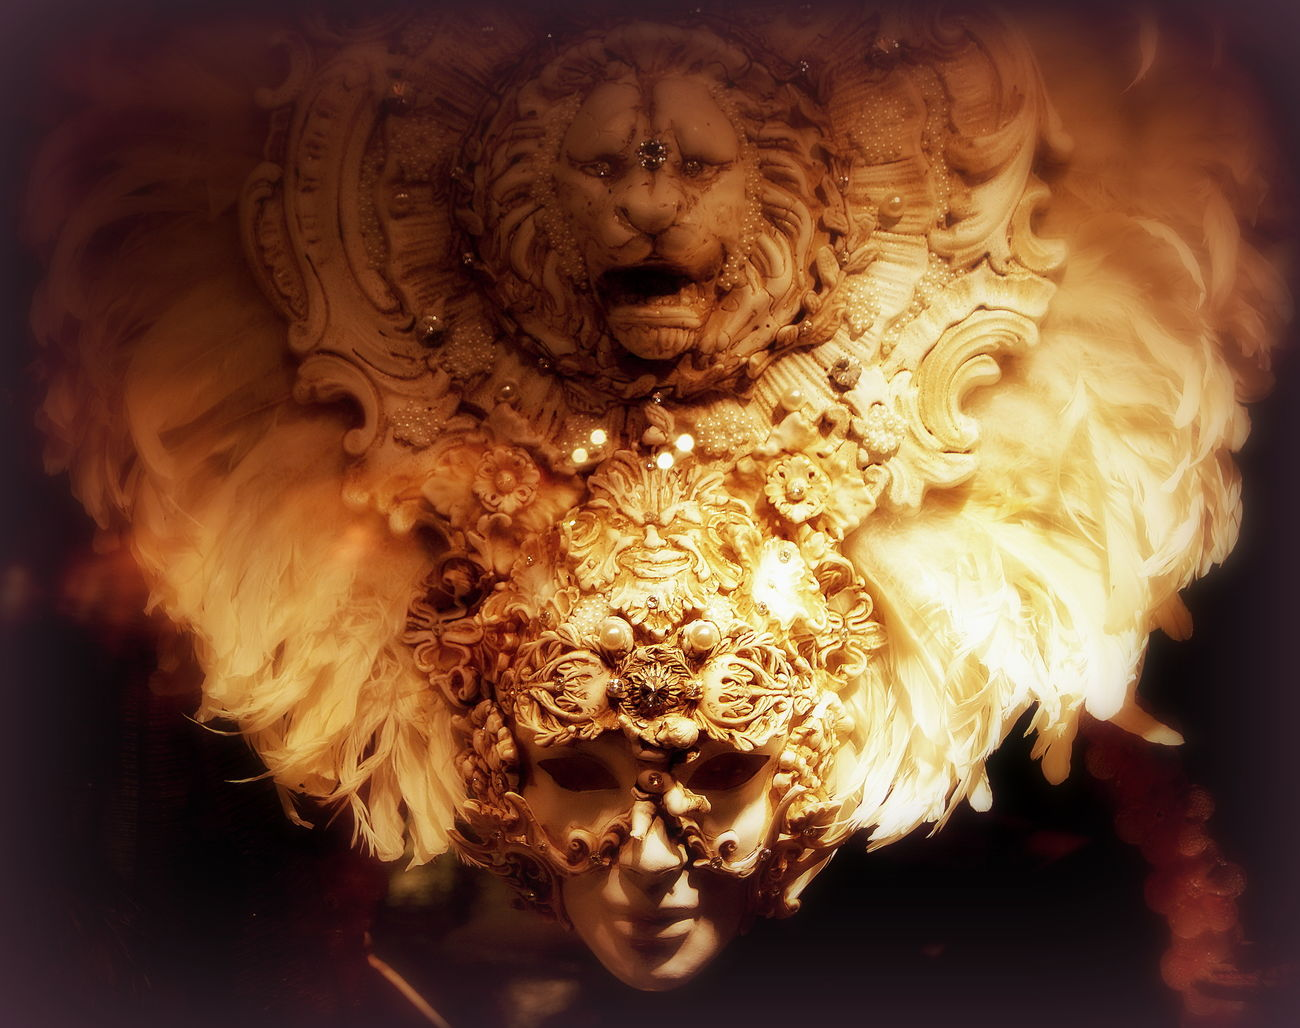 We all wear masks.... Some are more beautiful than others. Carnaval Carnaval Venitien Carnevale Carnevale Di Venezia Close-up Day Italia Italy Italy❤️ Masque Masquerade Mask No People Serenissima Venezia Venezia #venice Venezia Italia Venezia Venice Venice Venice, Italy Venise Venise Italie Venise Venezia Venice